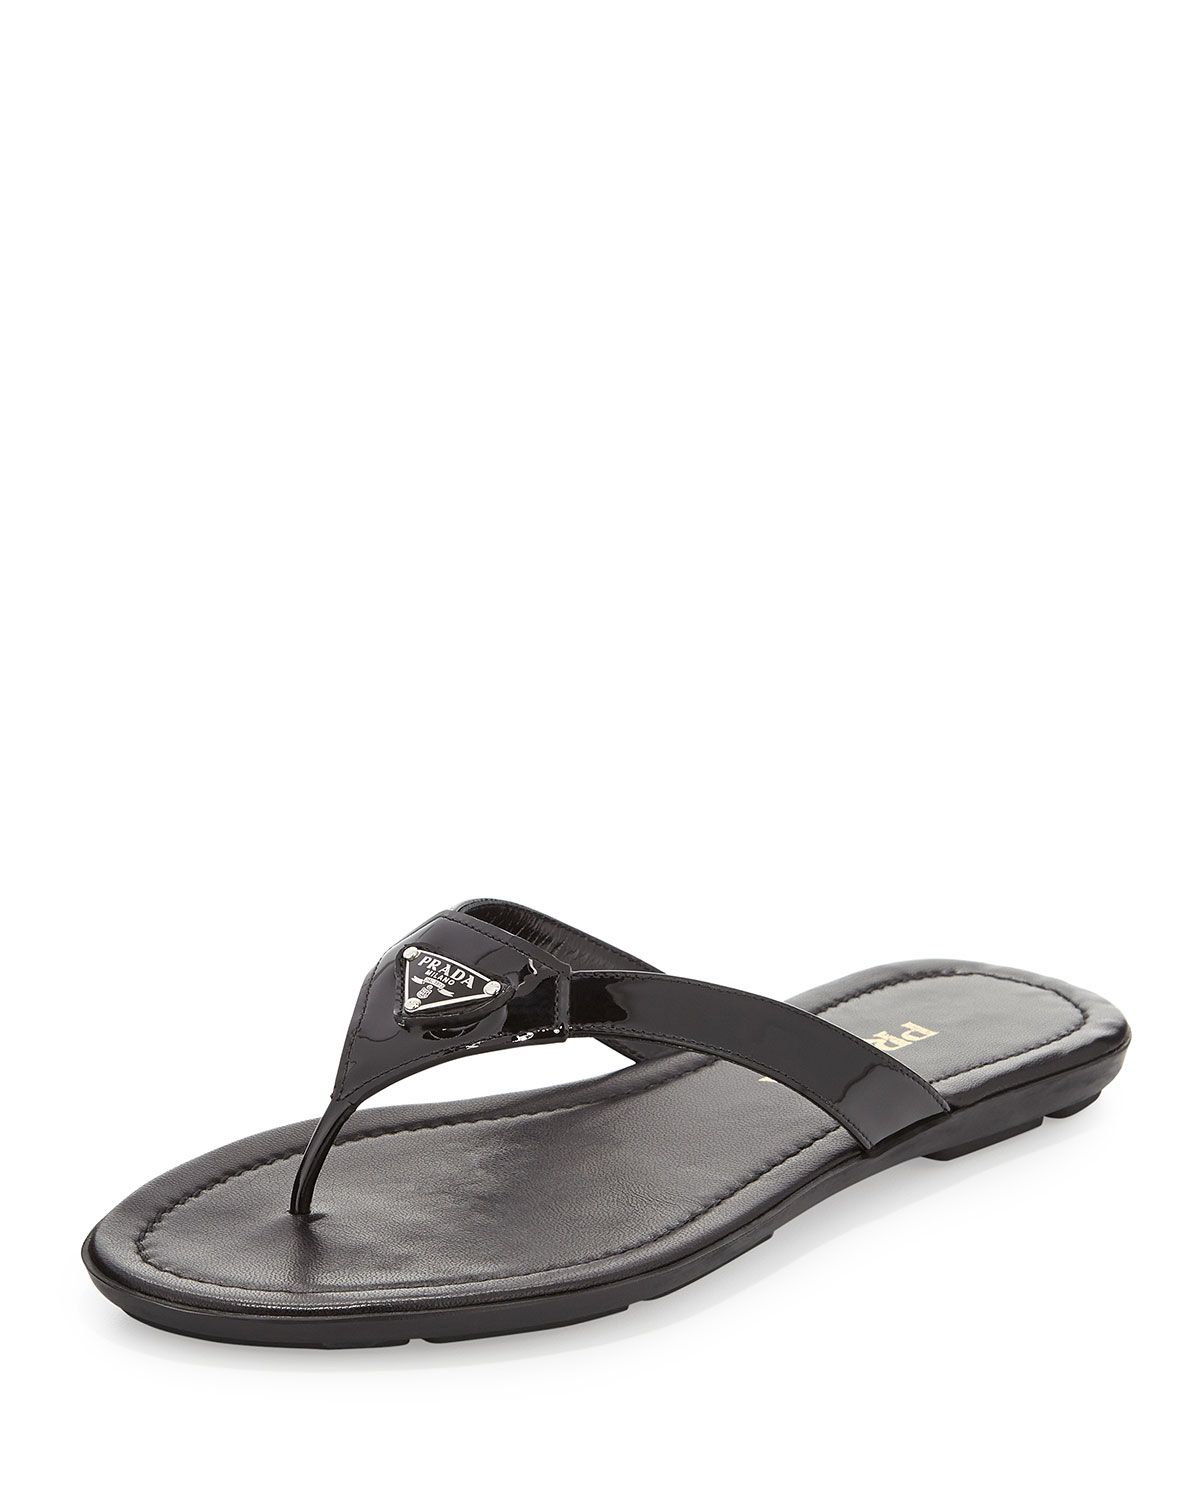 562893d01e24 Patent Leather Thong Sandal